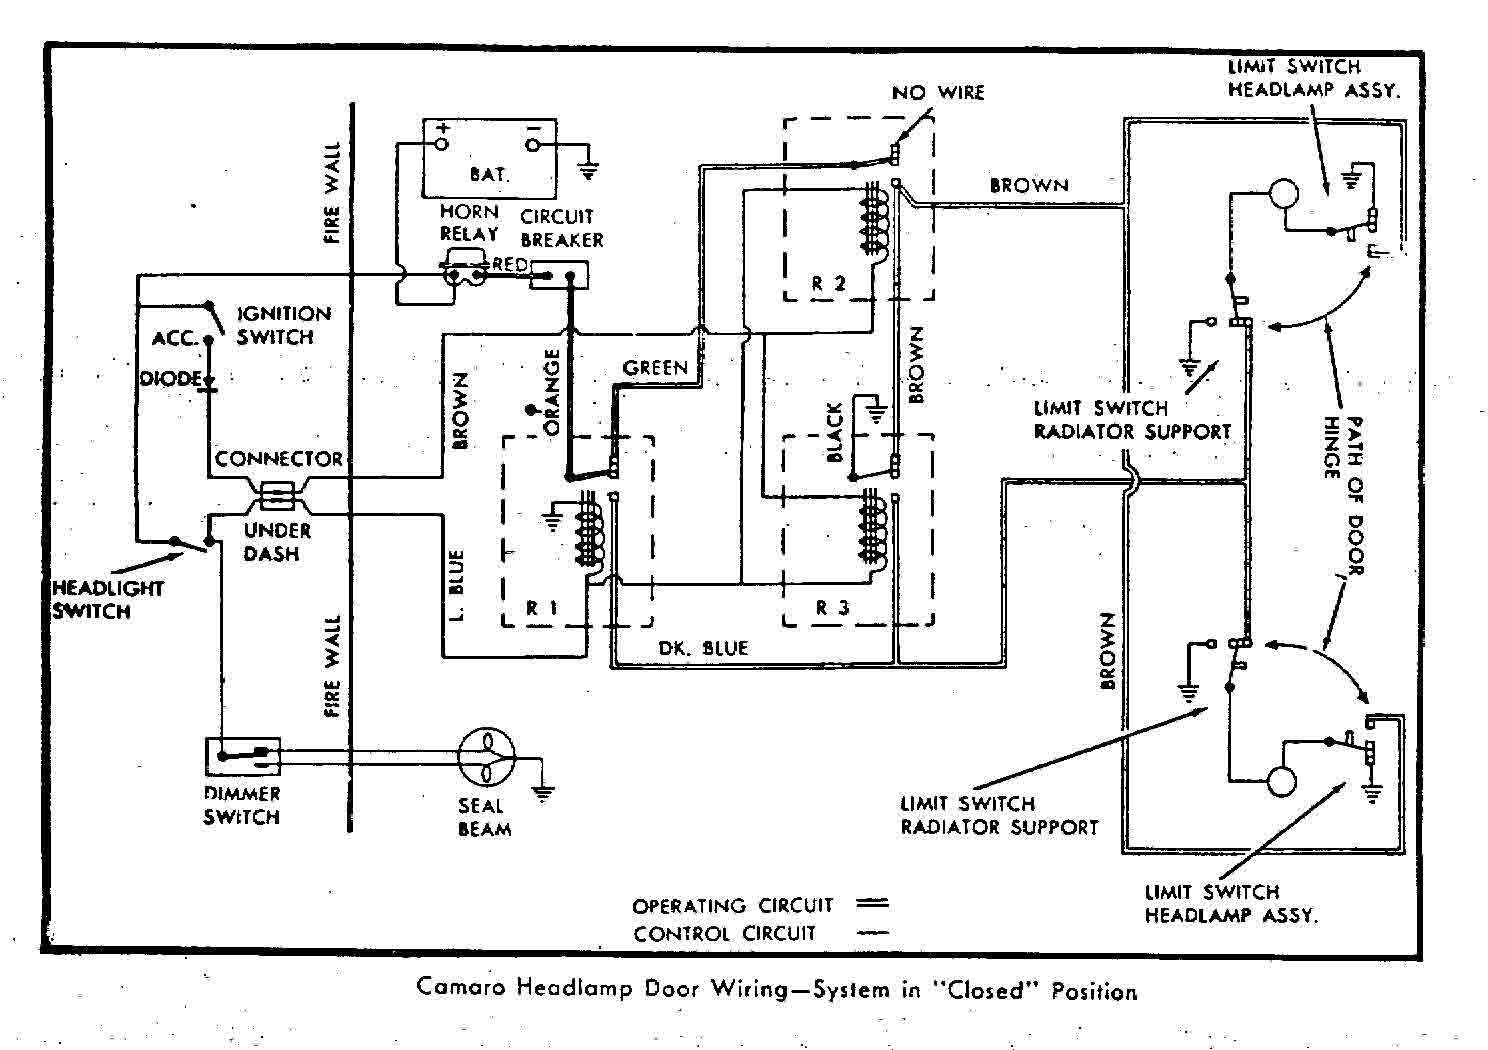 69 camaro wiper motor wiring diagram great installation of wiring 1969 camaro wiper wiring diagram wiring diagram third level rh 1 20 jacobwinterstein com 1969 camaro wiper motor wiring 68 camaro wiper motor wiring